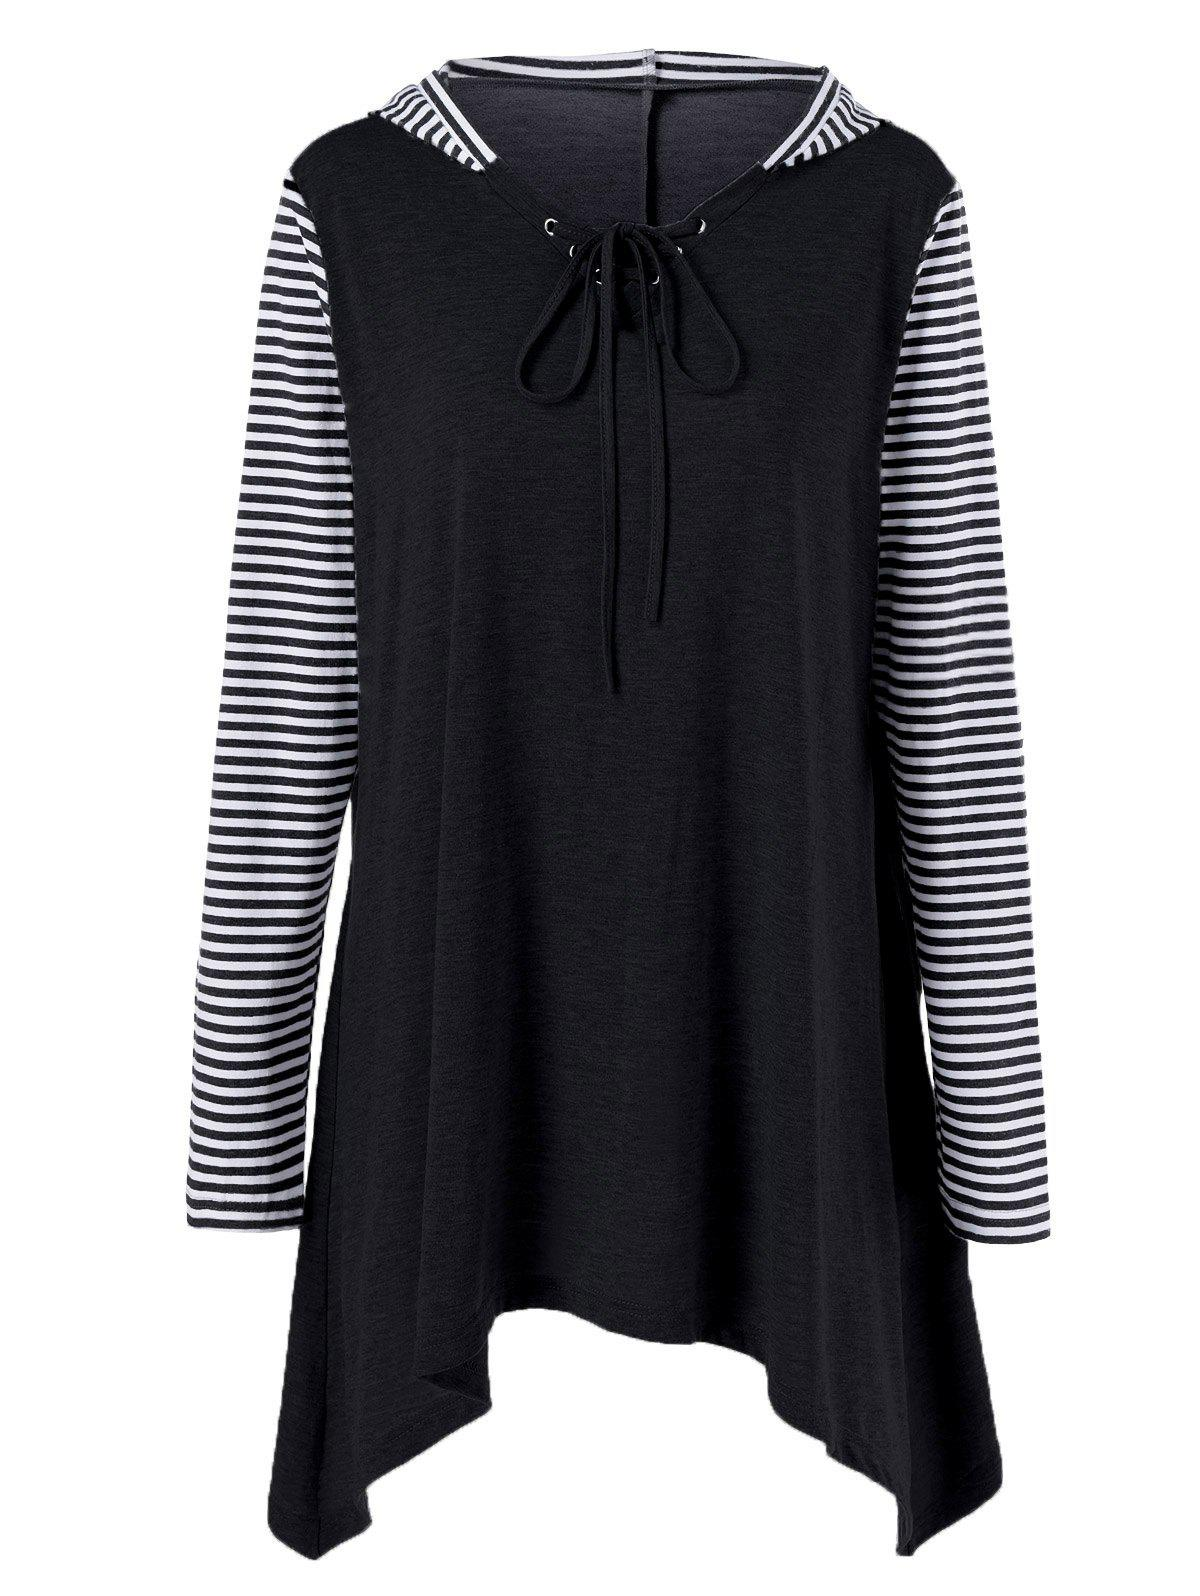 Plus Size Asymmetrical Striped Hooded T-ShirtWOMEN<br><br>Size: 2XL; Color: BLACK; Material: Polyester,Spandex; Shirt Length: Long; Sleeve Length: Full; Collar: Hooded; Style: Casual; Season: Fall,Spring; Pattern Type: Striped; Weight: 0.390kg; Package Contents: 1 x T-Shirt;